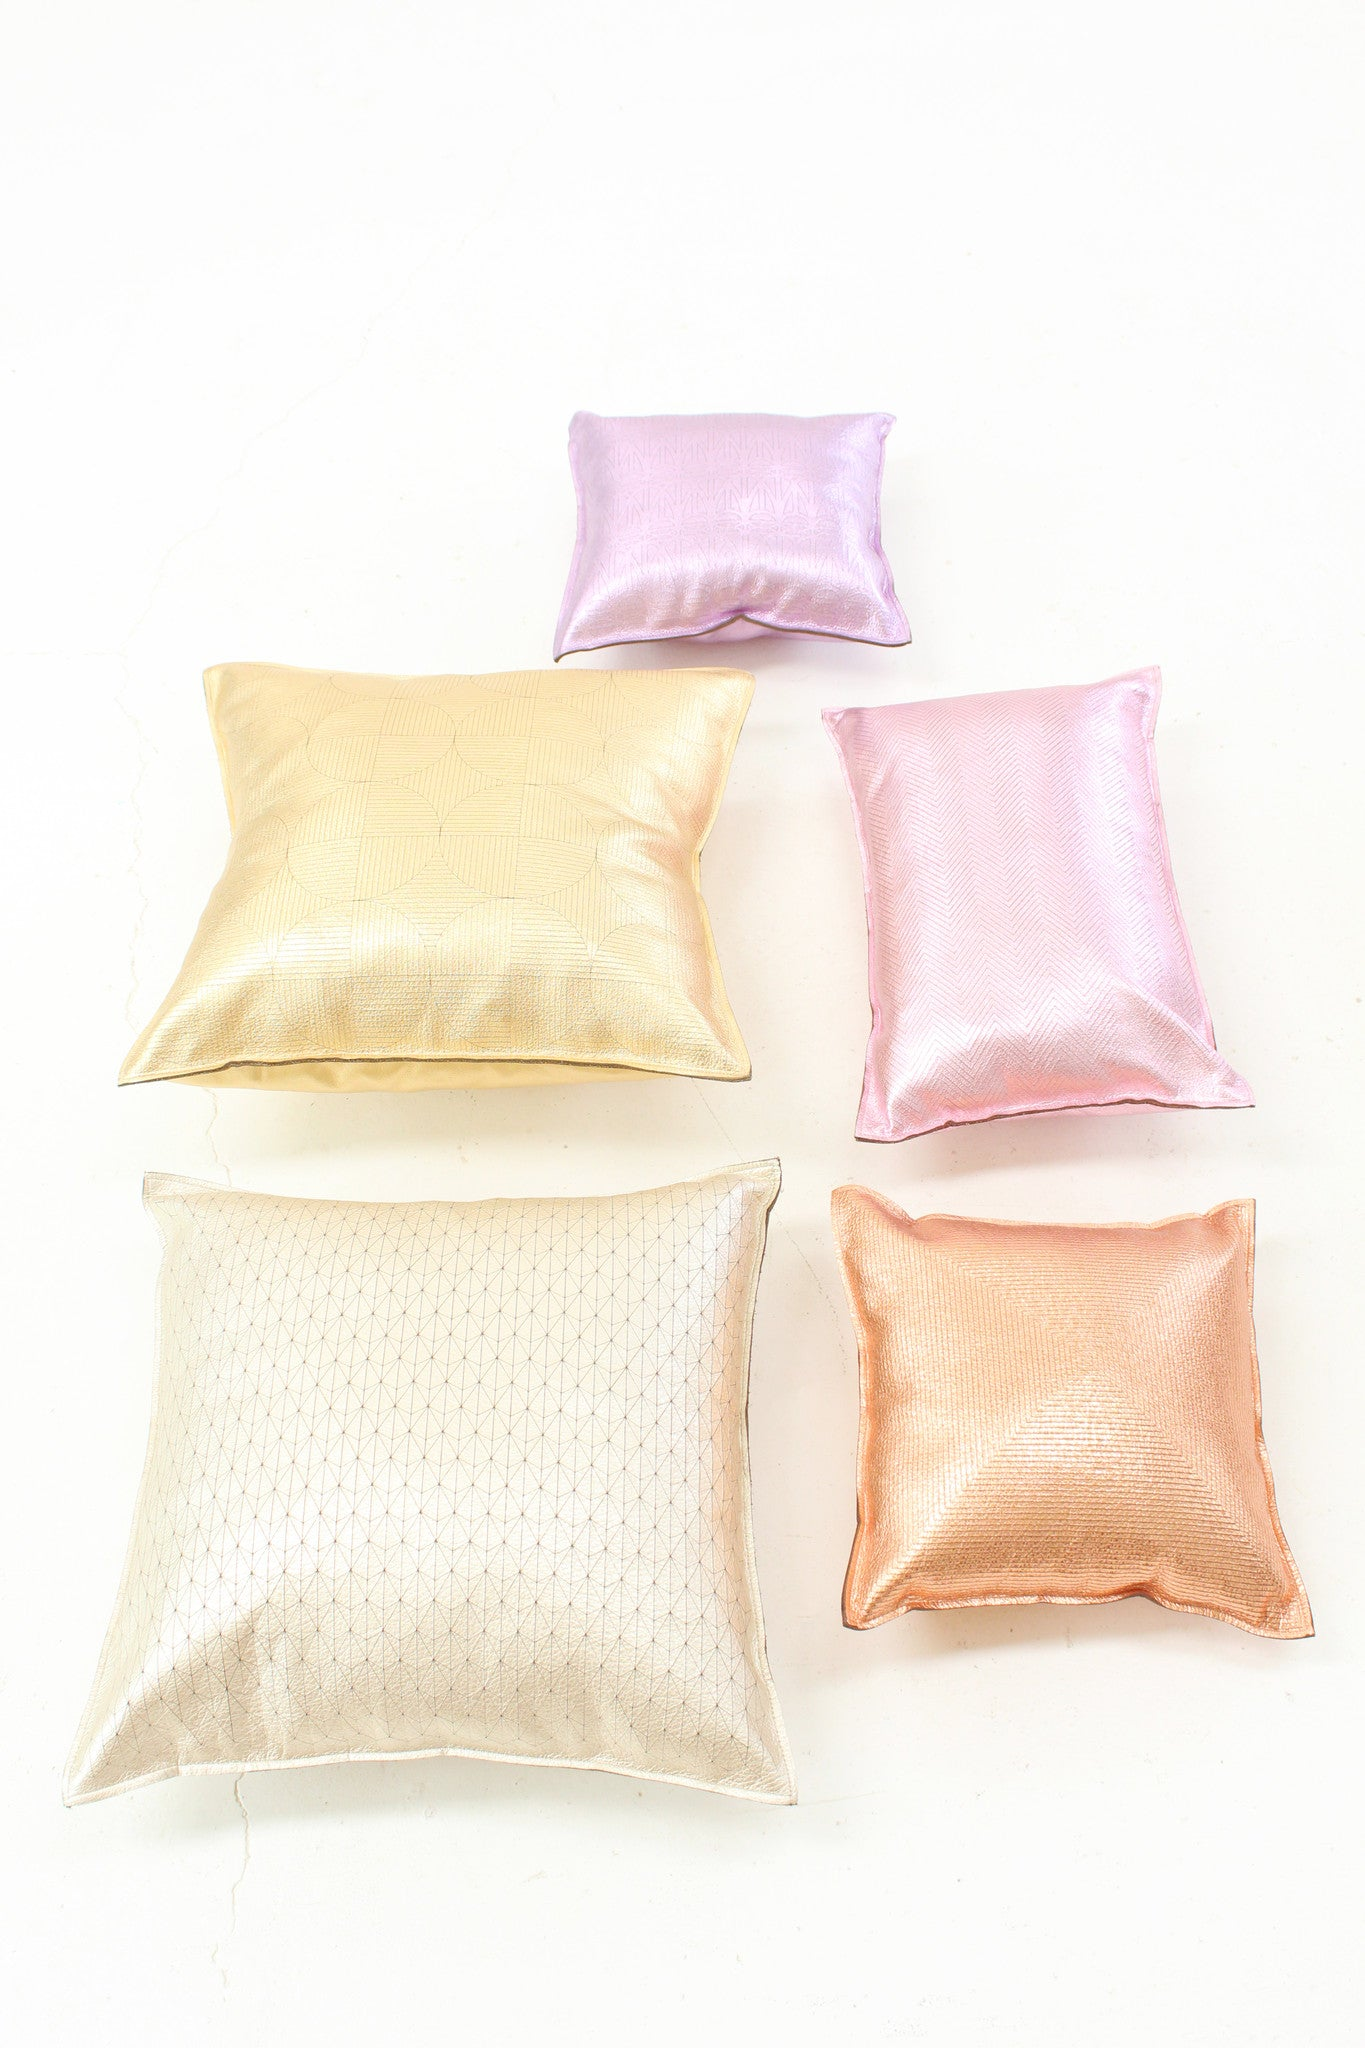 Beklina Metallic Pillows